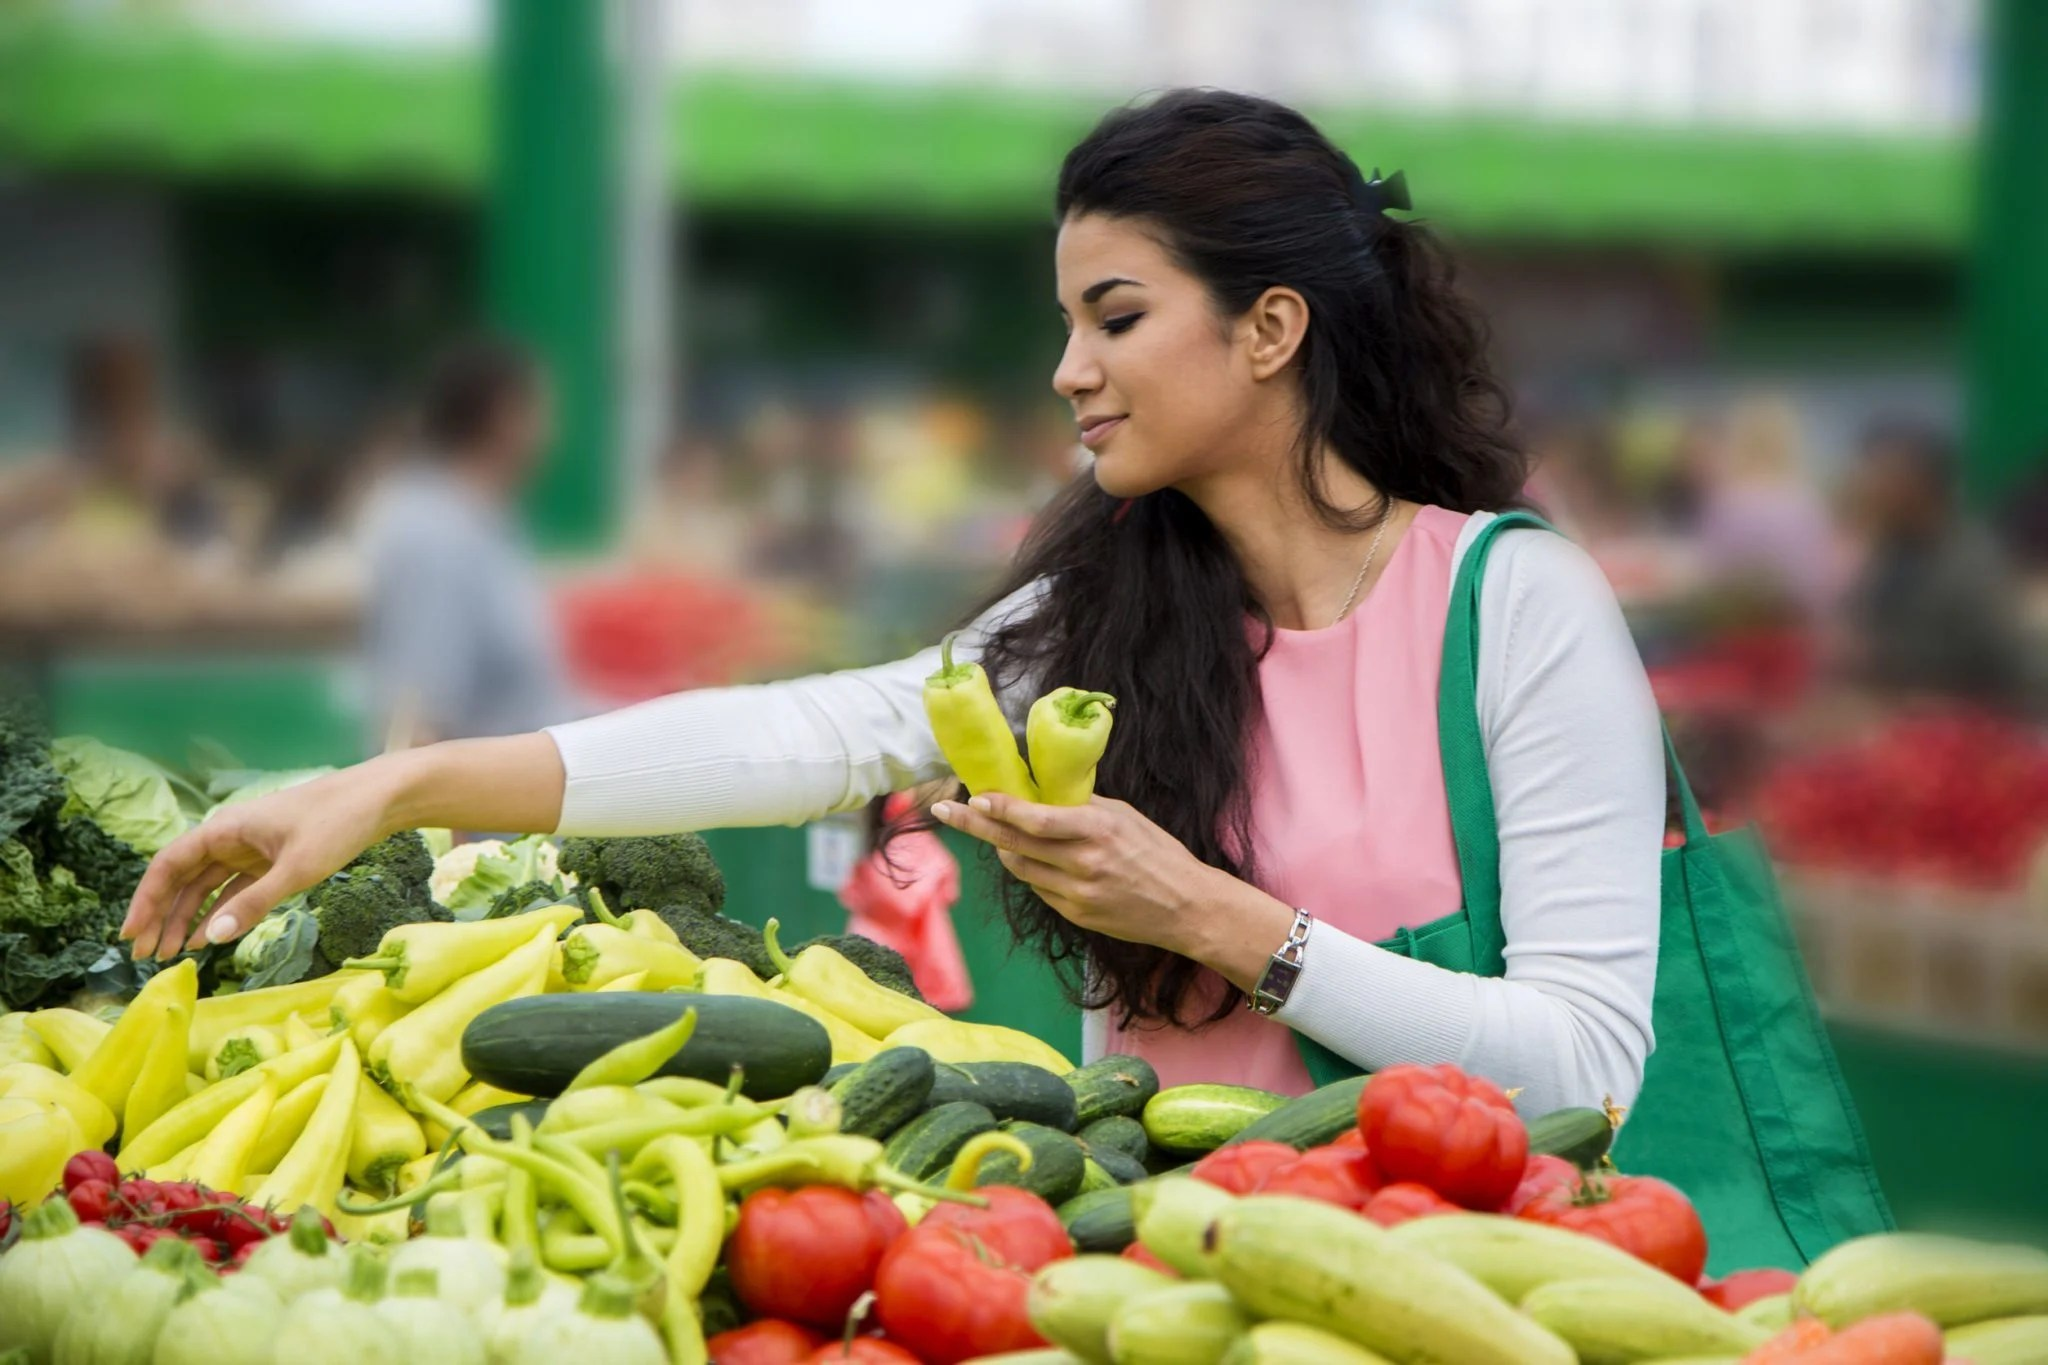 Nutrition How To Make Healthier Food Choices